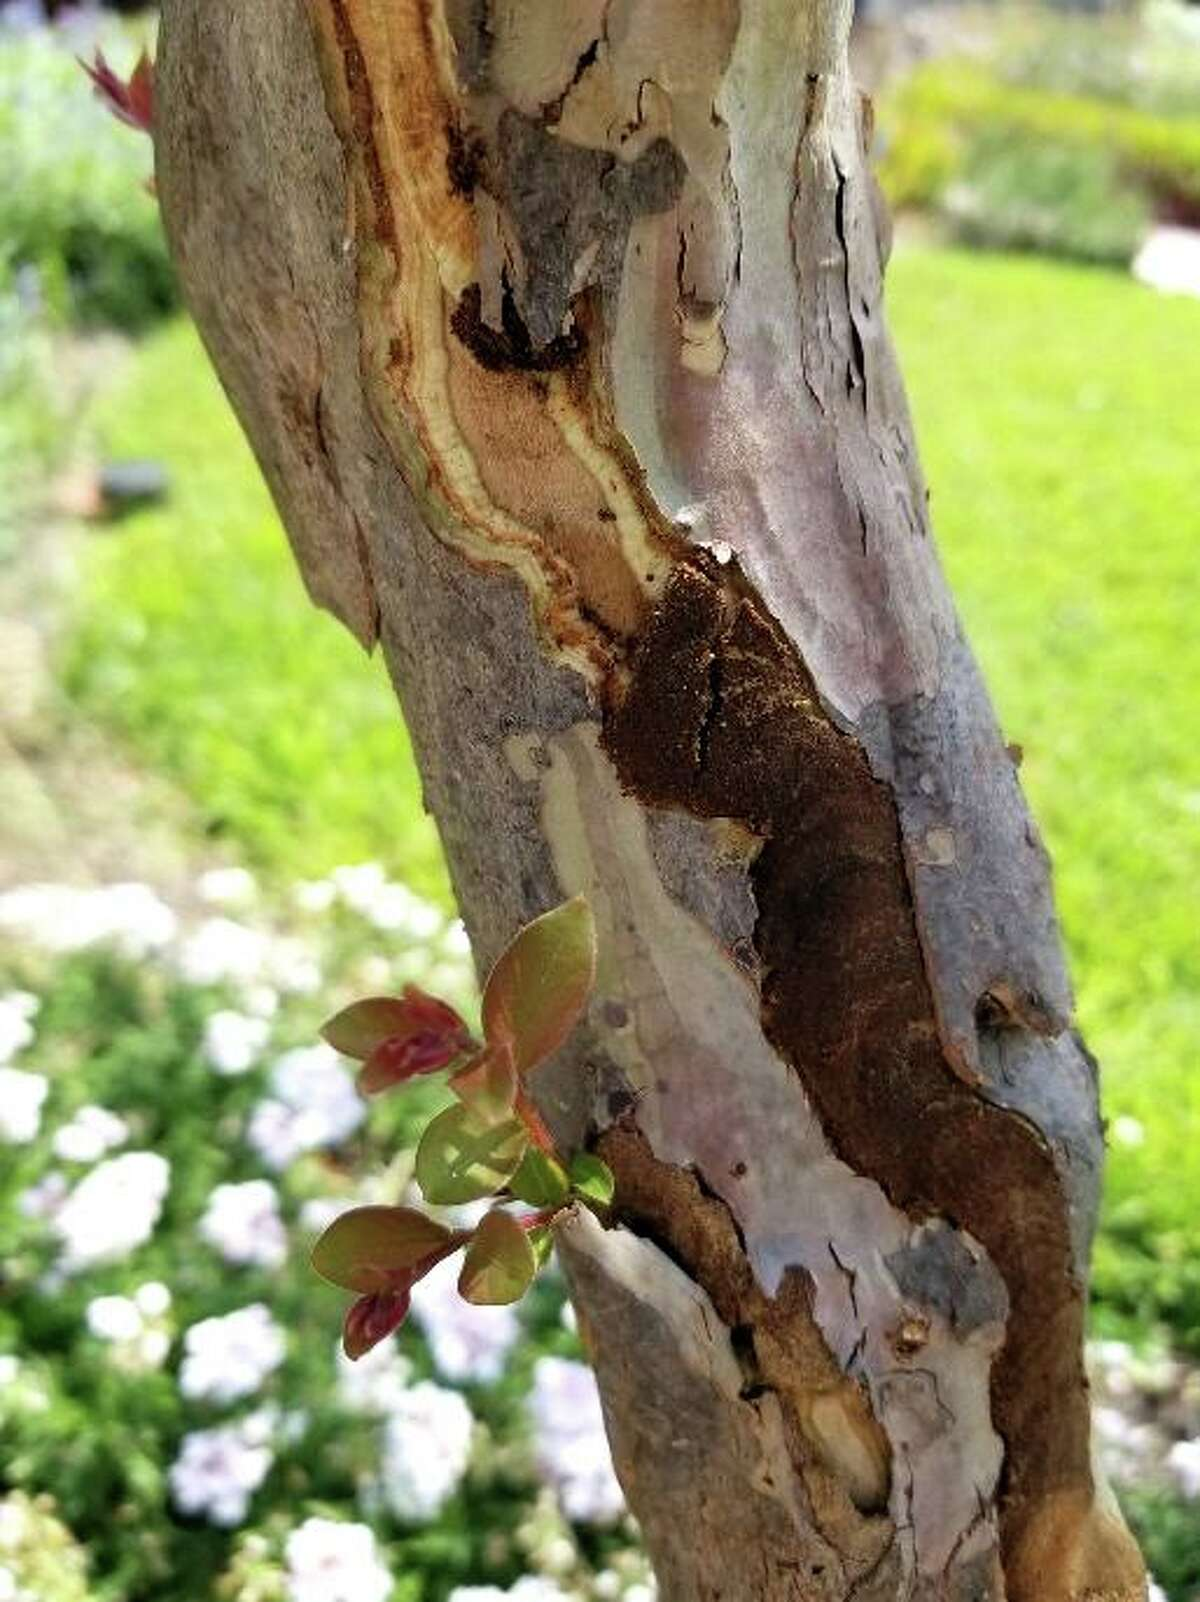 Some type of insect got behind the exfoliating bark on this crape myrtle's trunk and made its way around. It's probably not a serious issue.